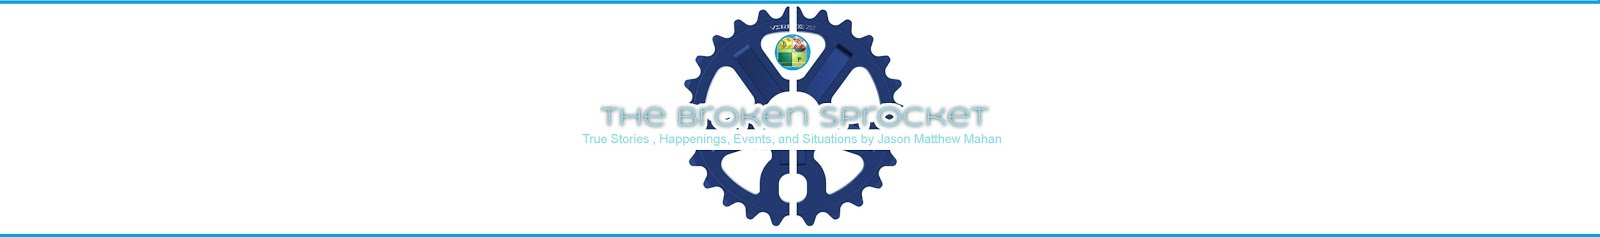 The Broken Sprocket